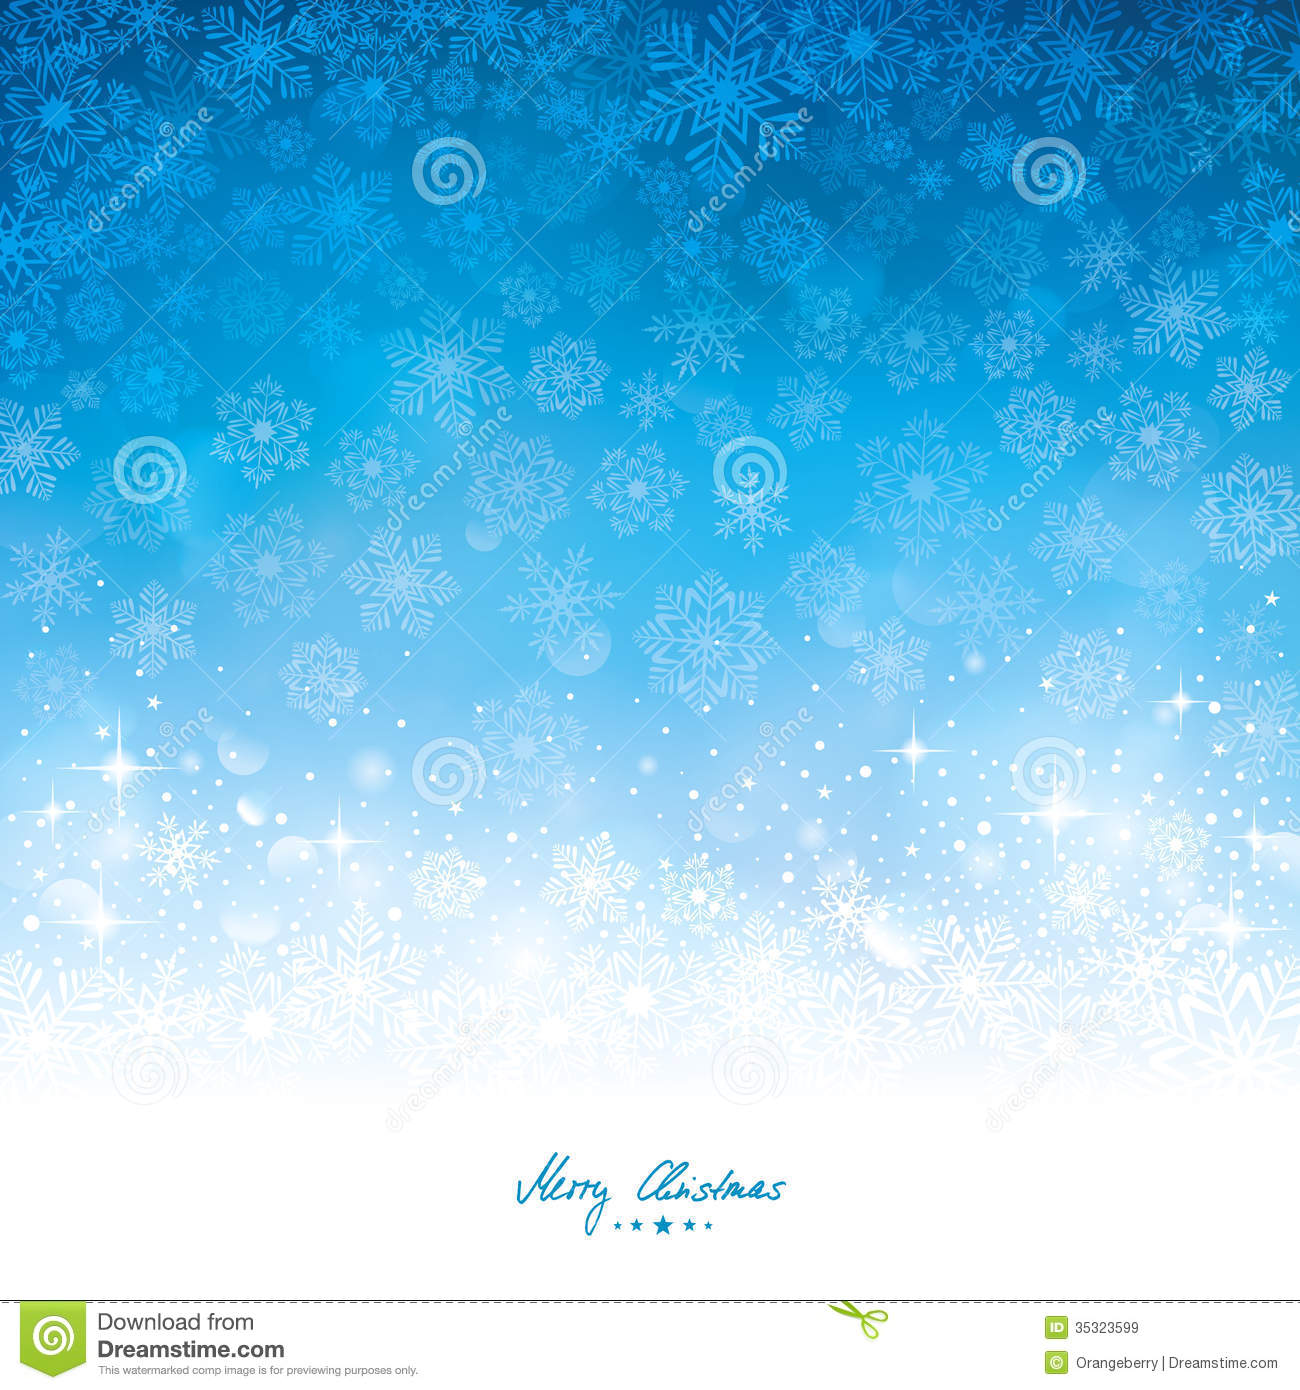 abstract winter background free - photo #14